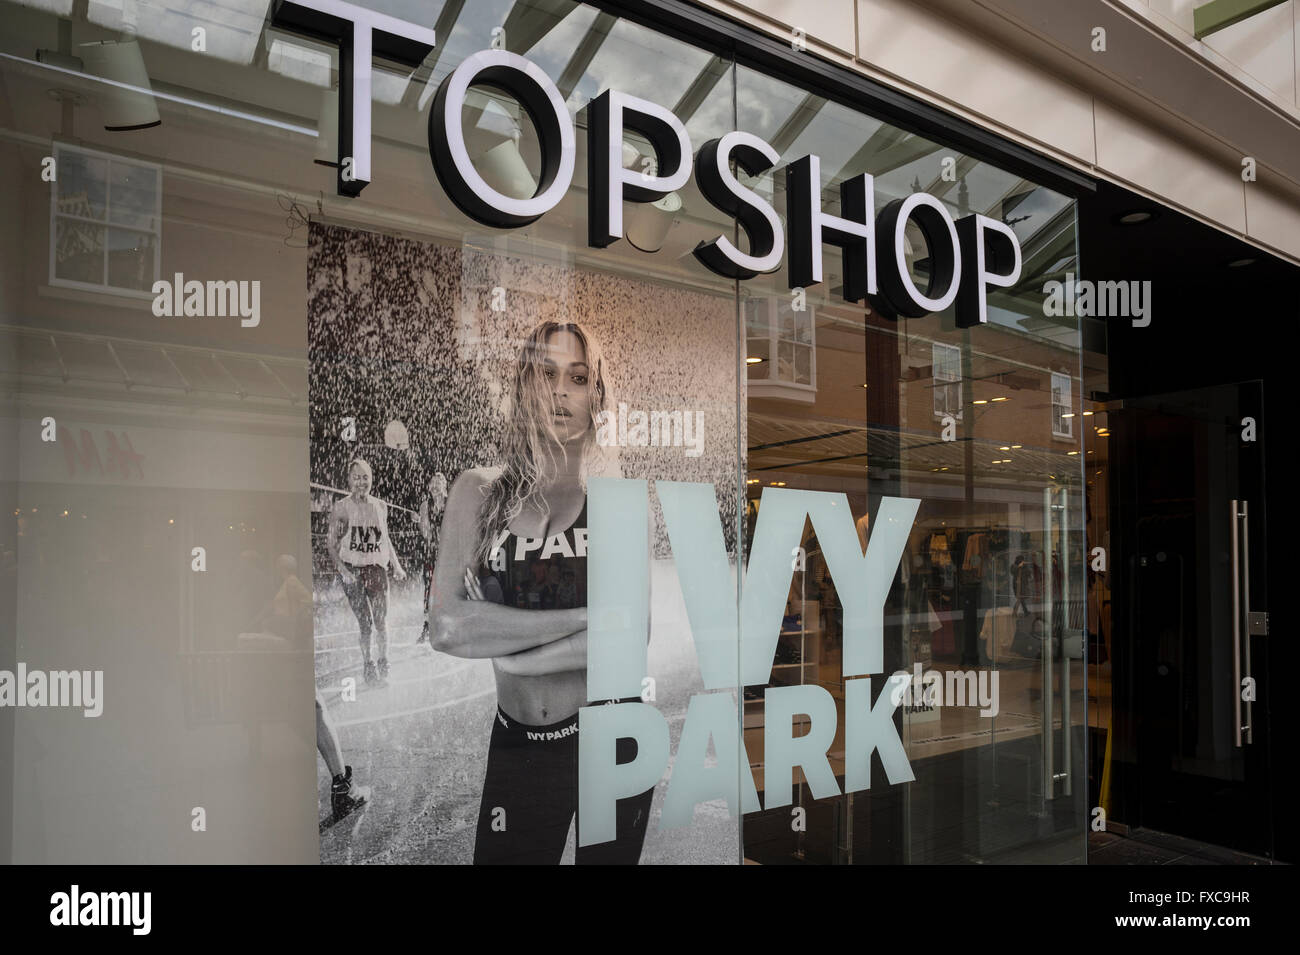 2b00a96c4a9fec Beyonce s Ivy Park activewear clothing brand launches nationwide in Topshop  stores in the UK today 14th April 2016. Topshop Sailsbury